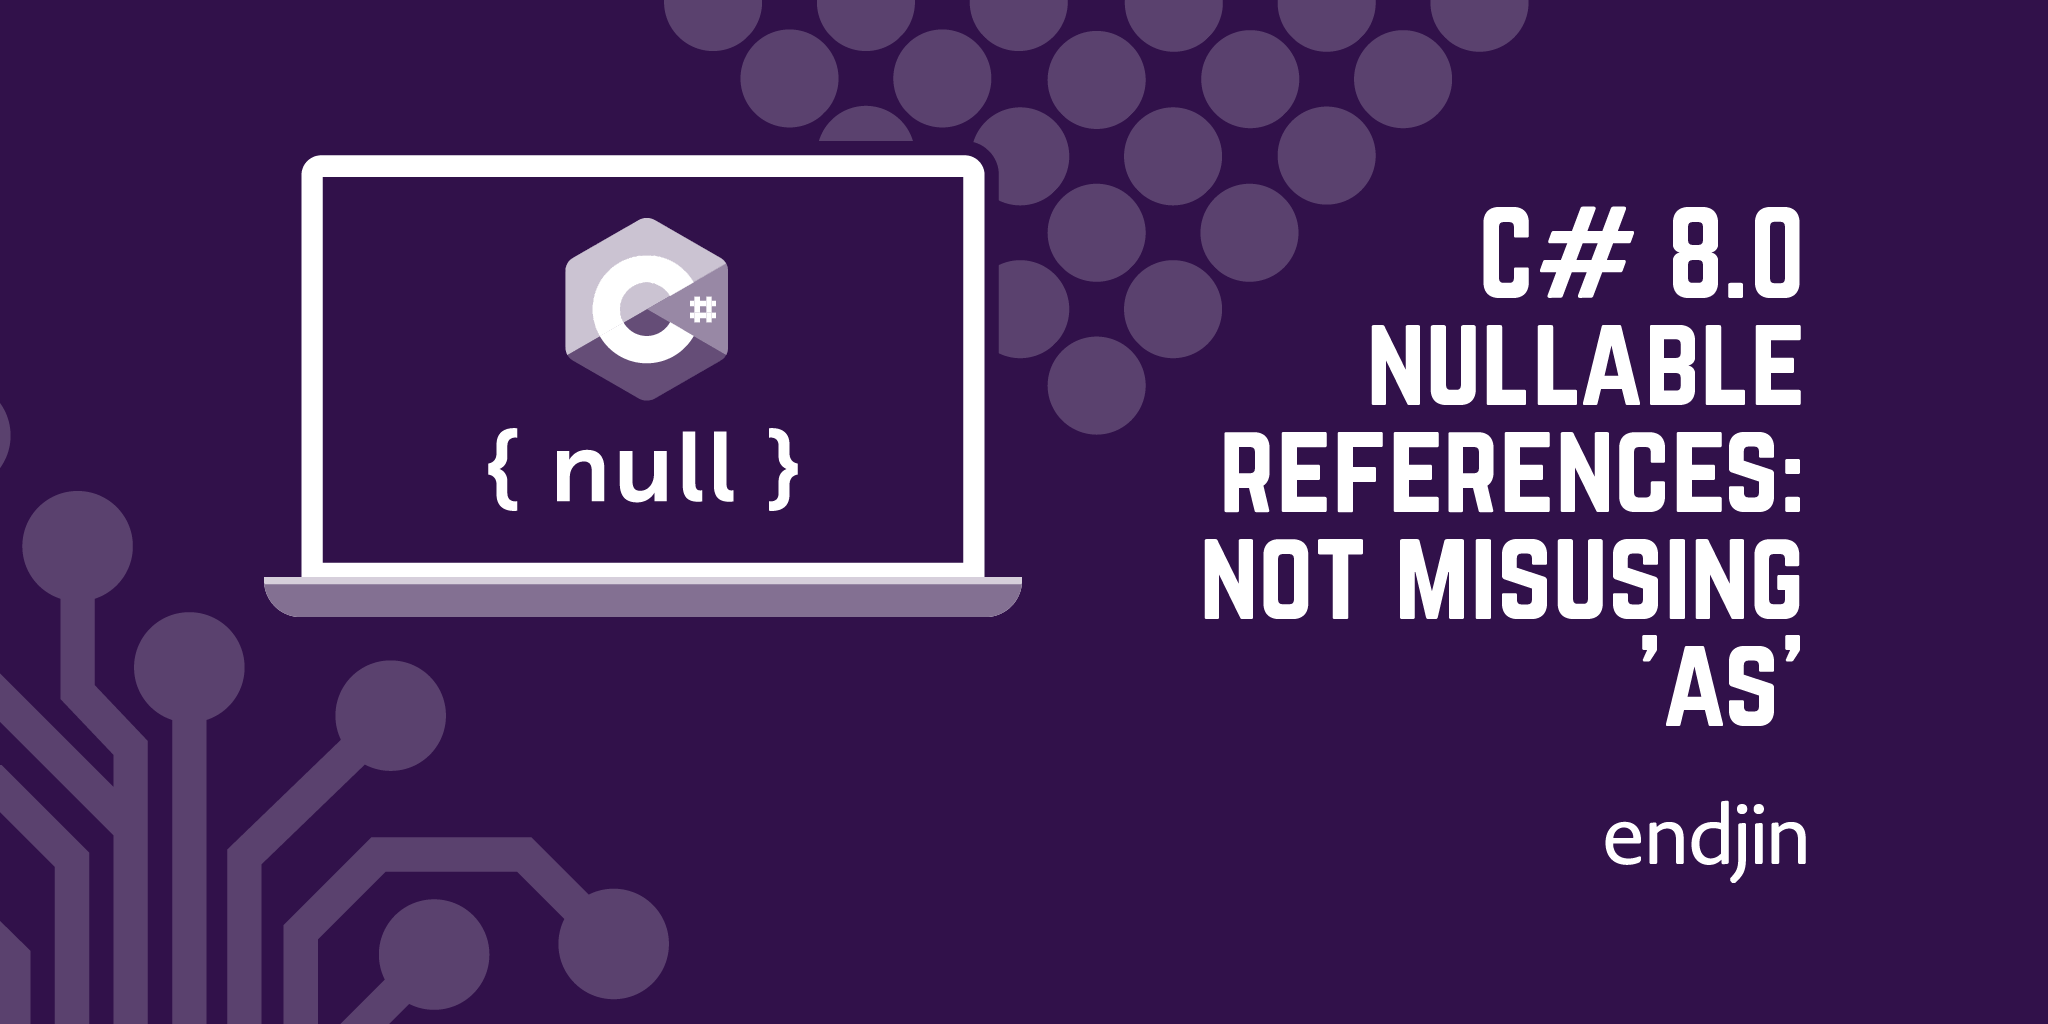 C# 8.0 nullable references: prepare today by not misusing 'as'